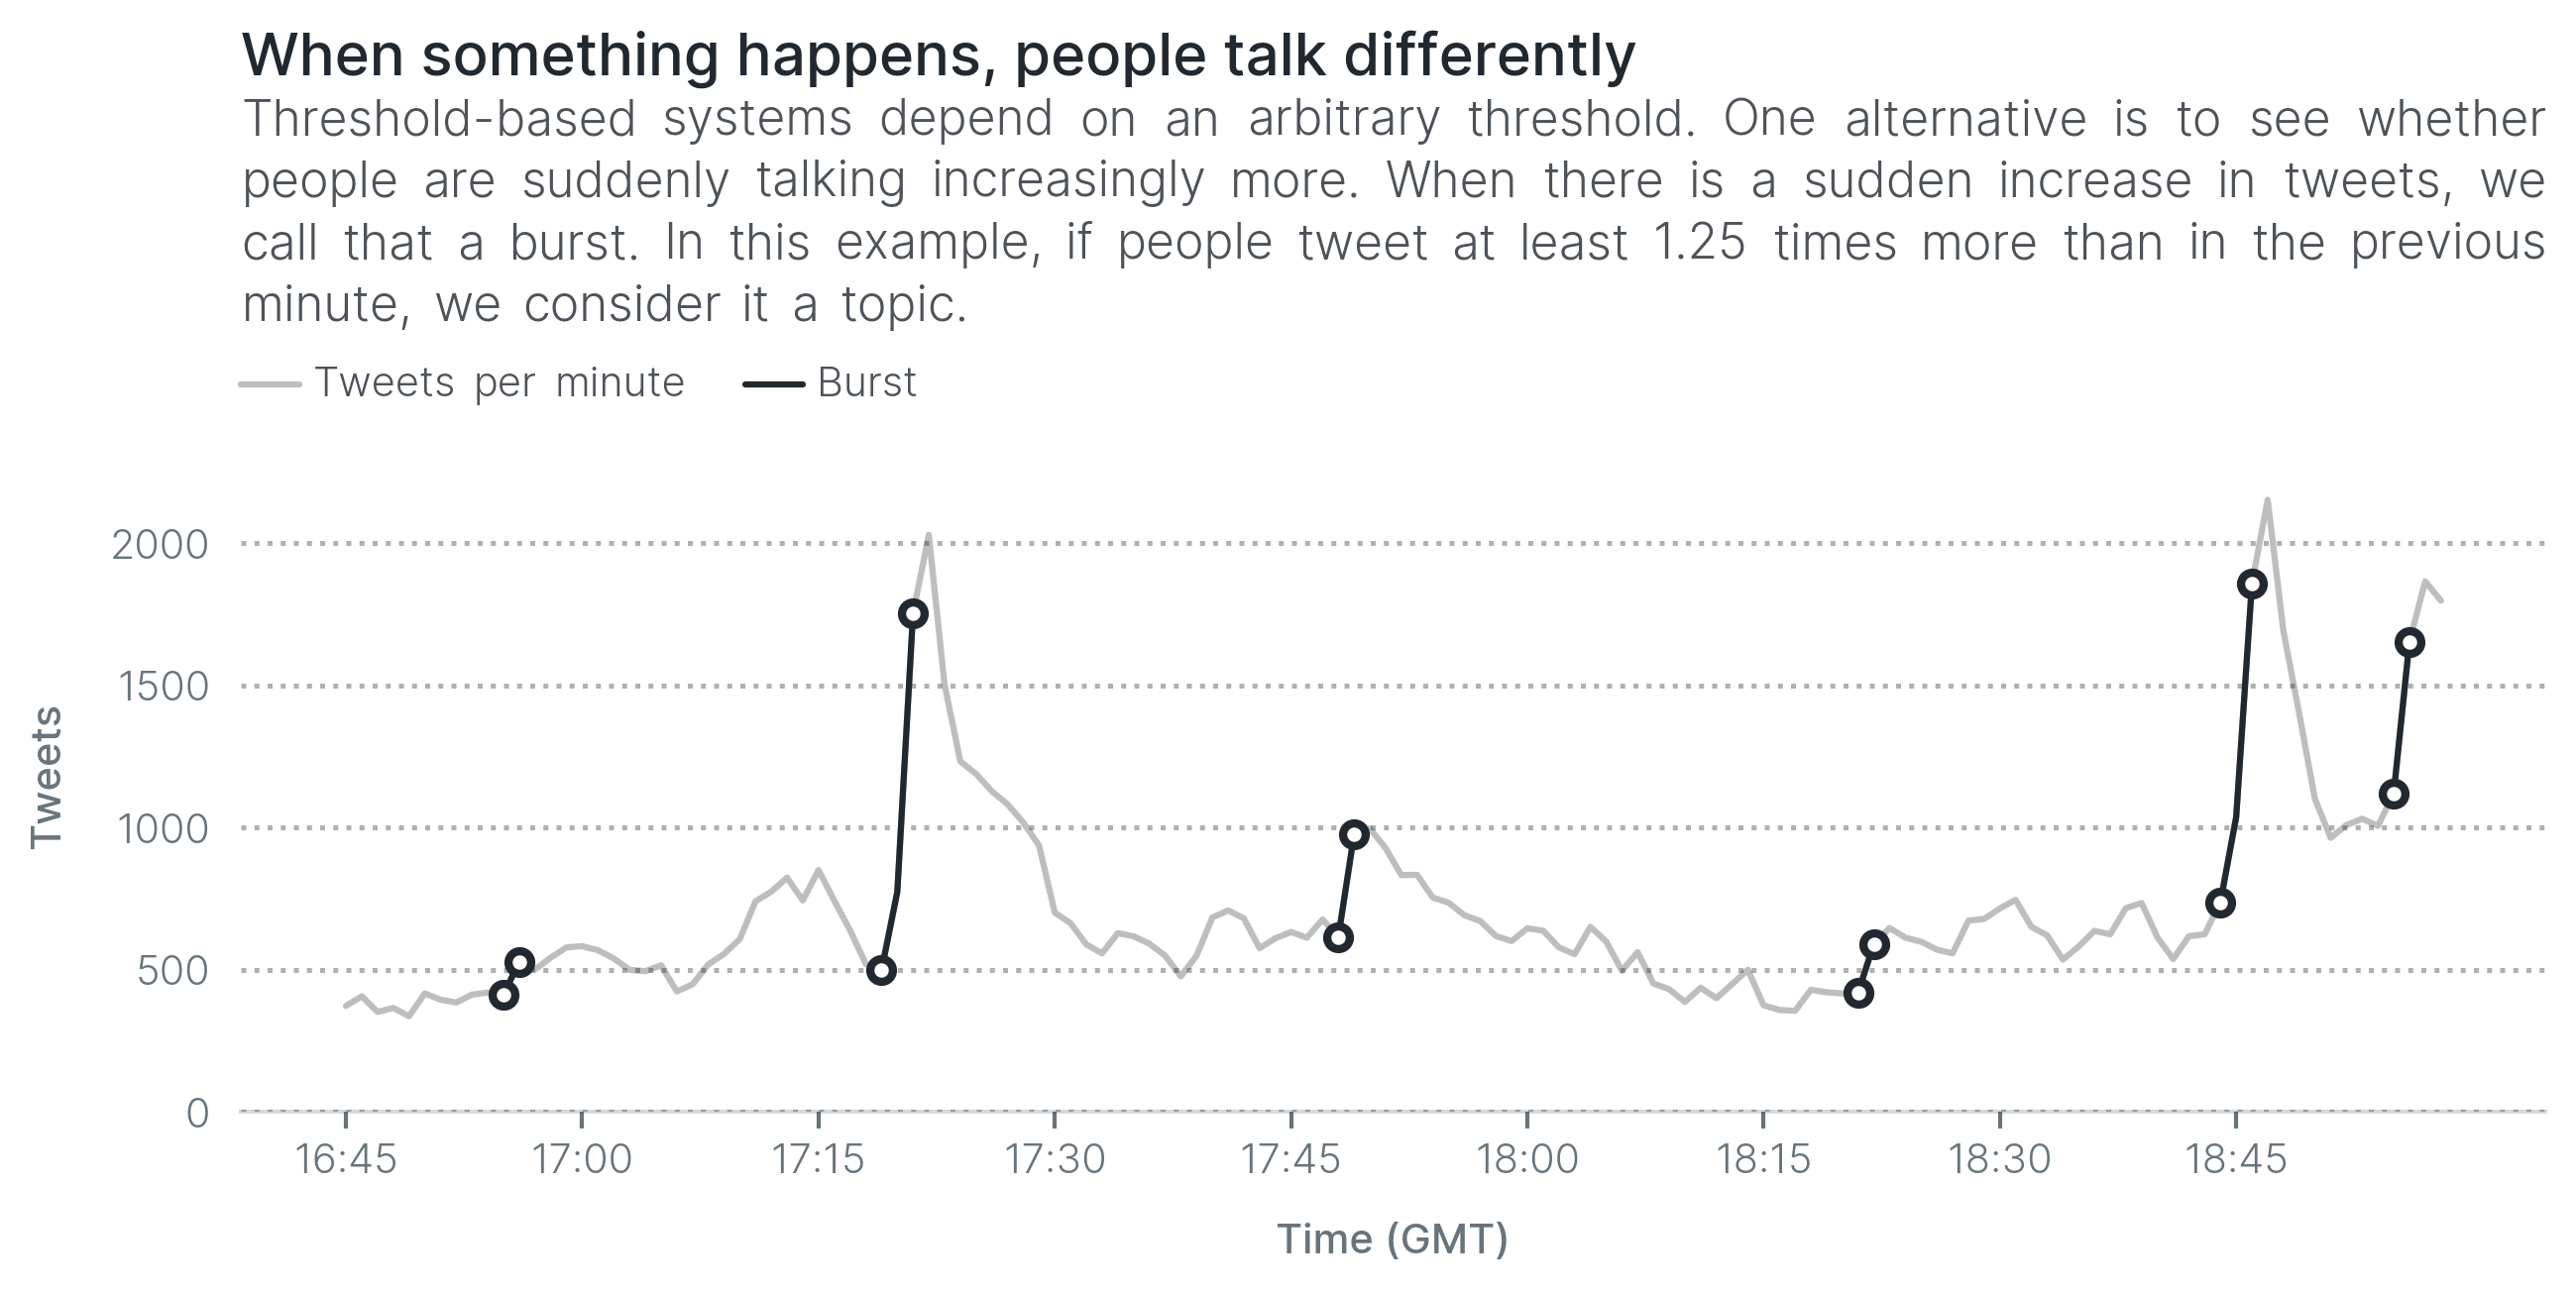 When something happens, people talk differently. Threshold-based systems depend on an arbitrary threshold. One alternative is to see whether people are suddenly talking increasingly more. When there is a sudden increase in tweets, we call that a burst. In this example, if people tweet at least 1.25 times more than in the previous minute, we consider it a topic.